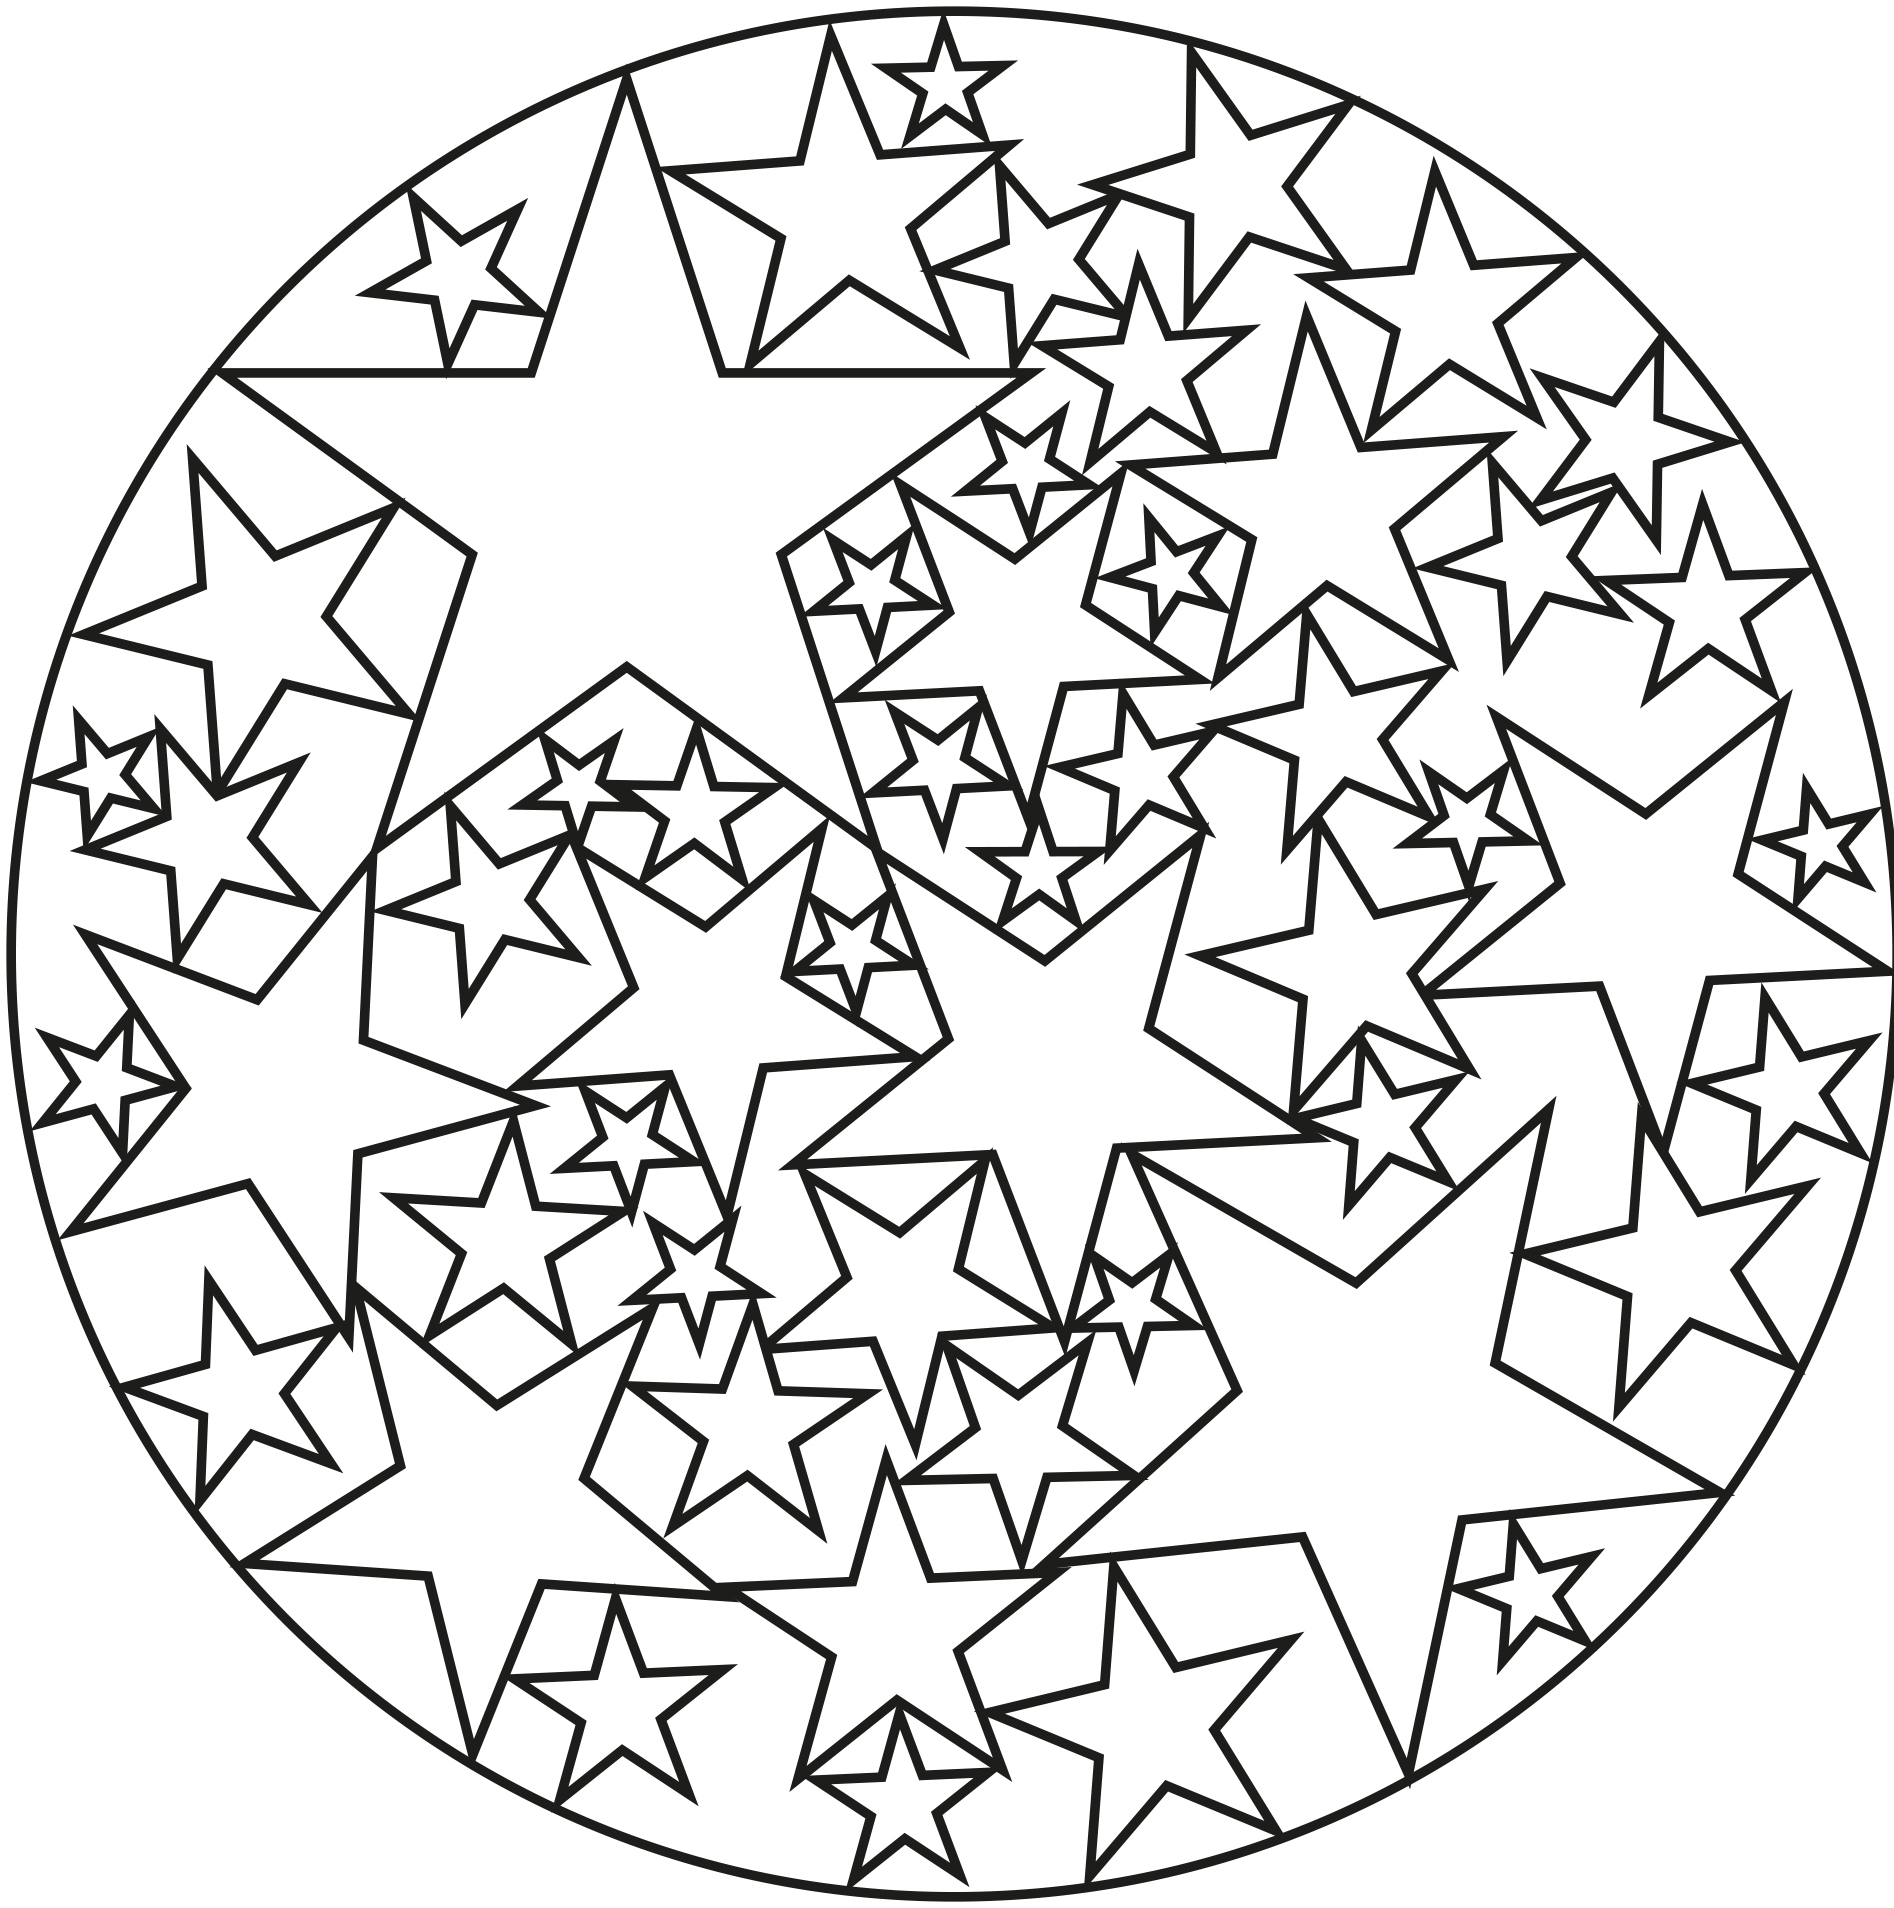 simple mandalas to color simple mandala 3 mandalas coloring pages for kids to to color mandalas simple